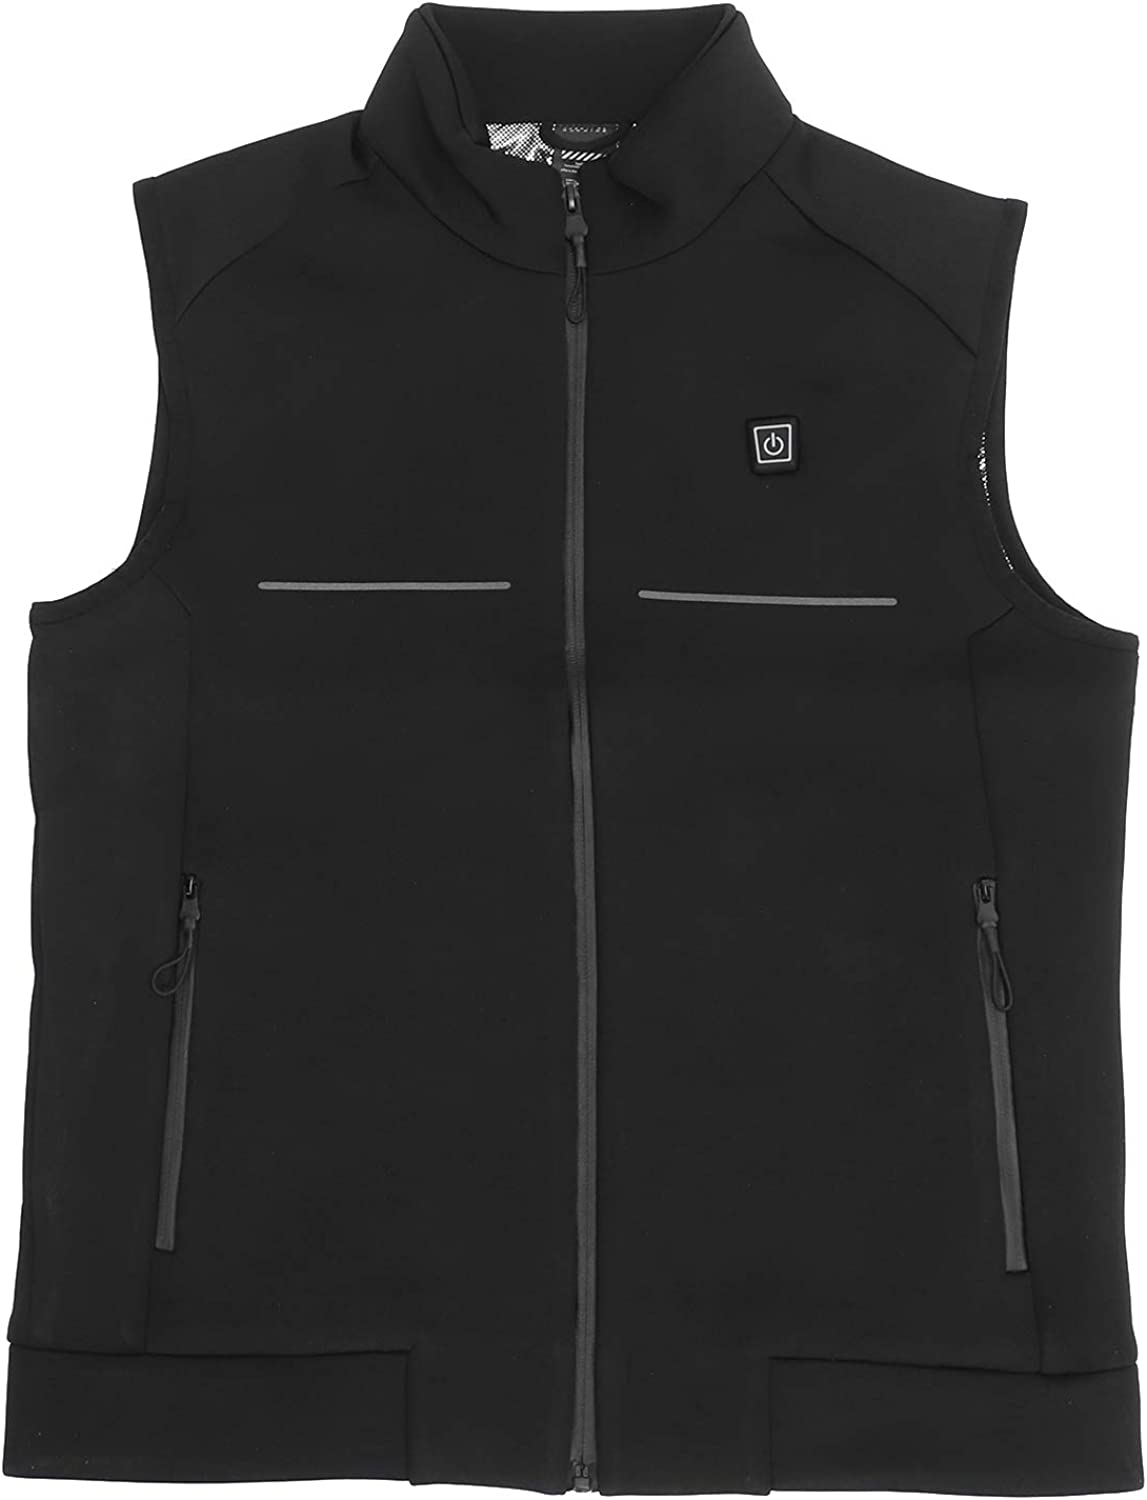 Lightweight Heated Vest,Riding Heated Vest USB Rechargeable 3 Level Temperature Electric Warming Cloth Unisex for Men Women